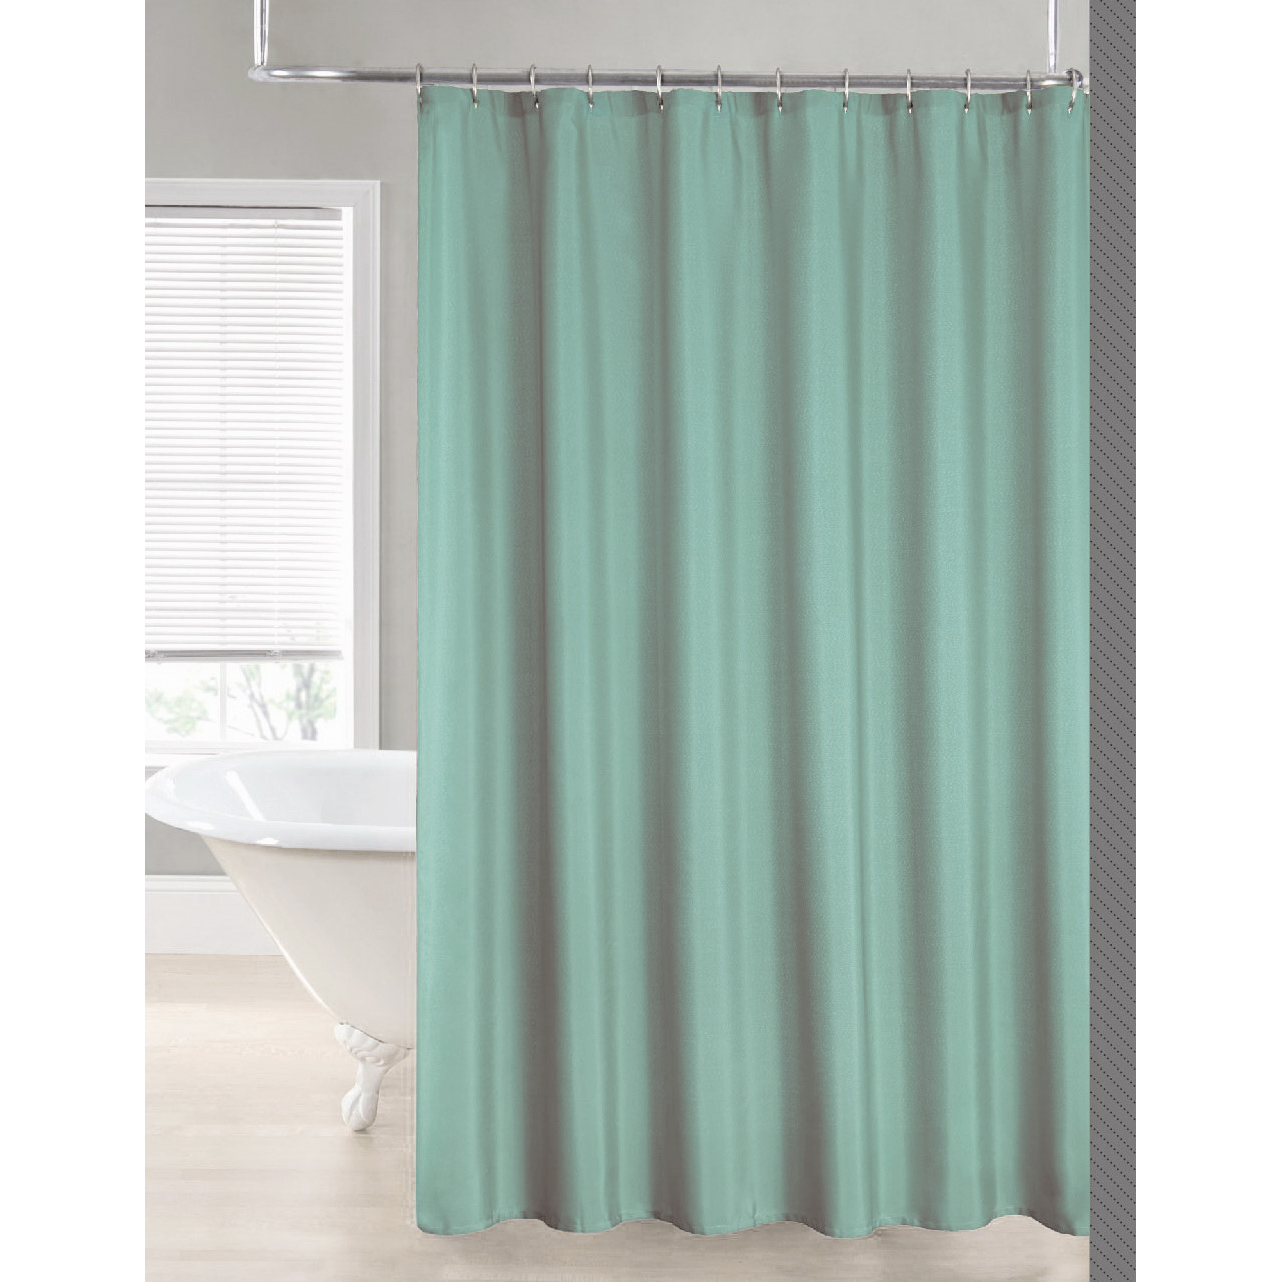 2 In 1 Water Repellant 70 X 72 Polyester Fabric Shower Curtain Liner 11 Colors Ebay